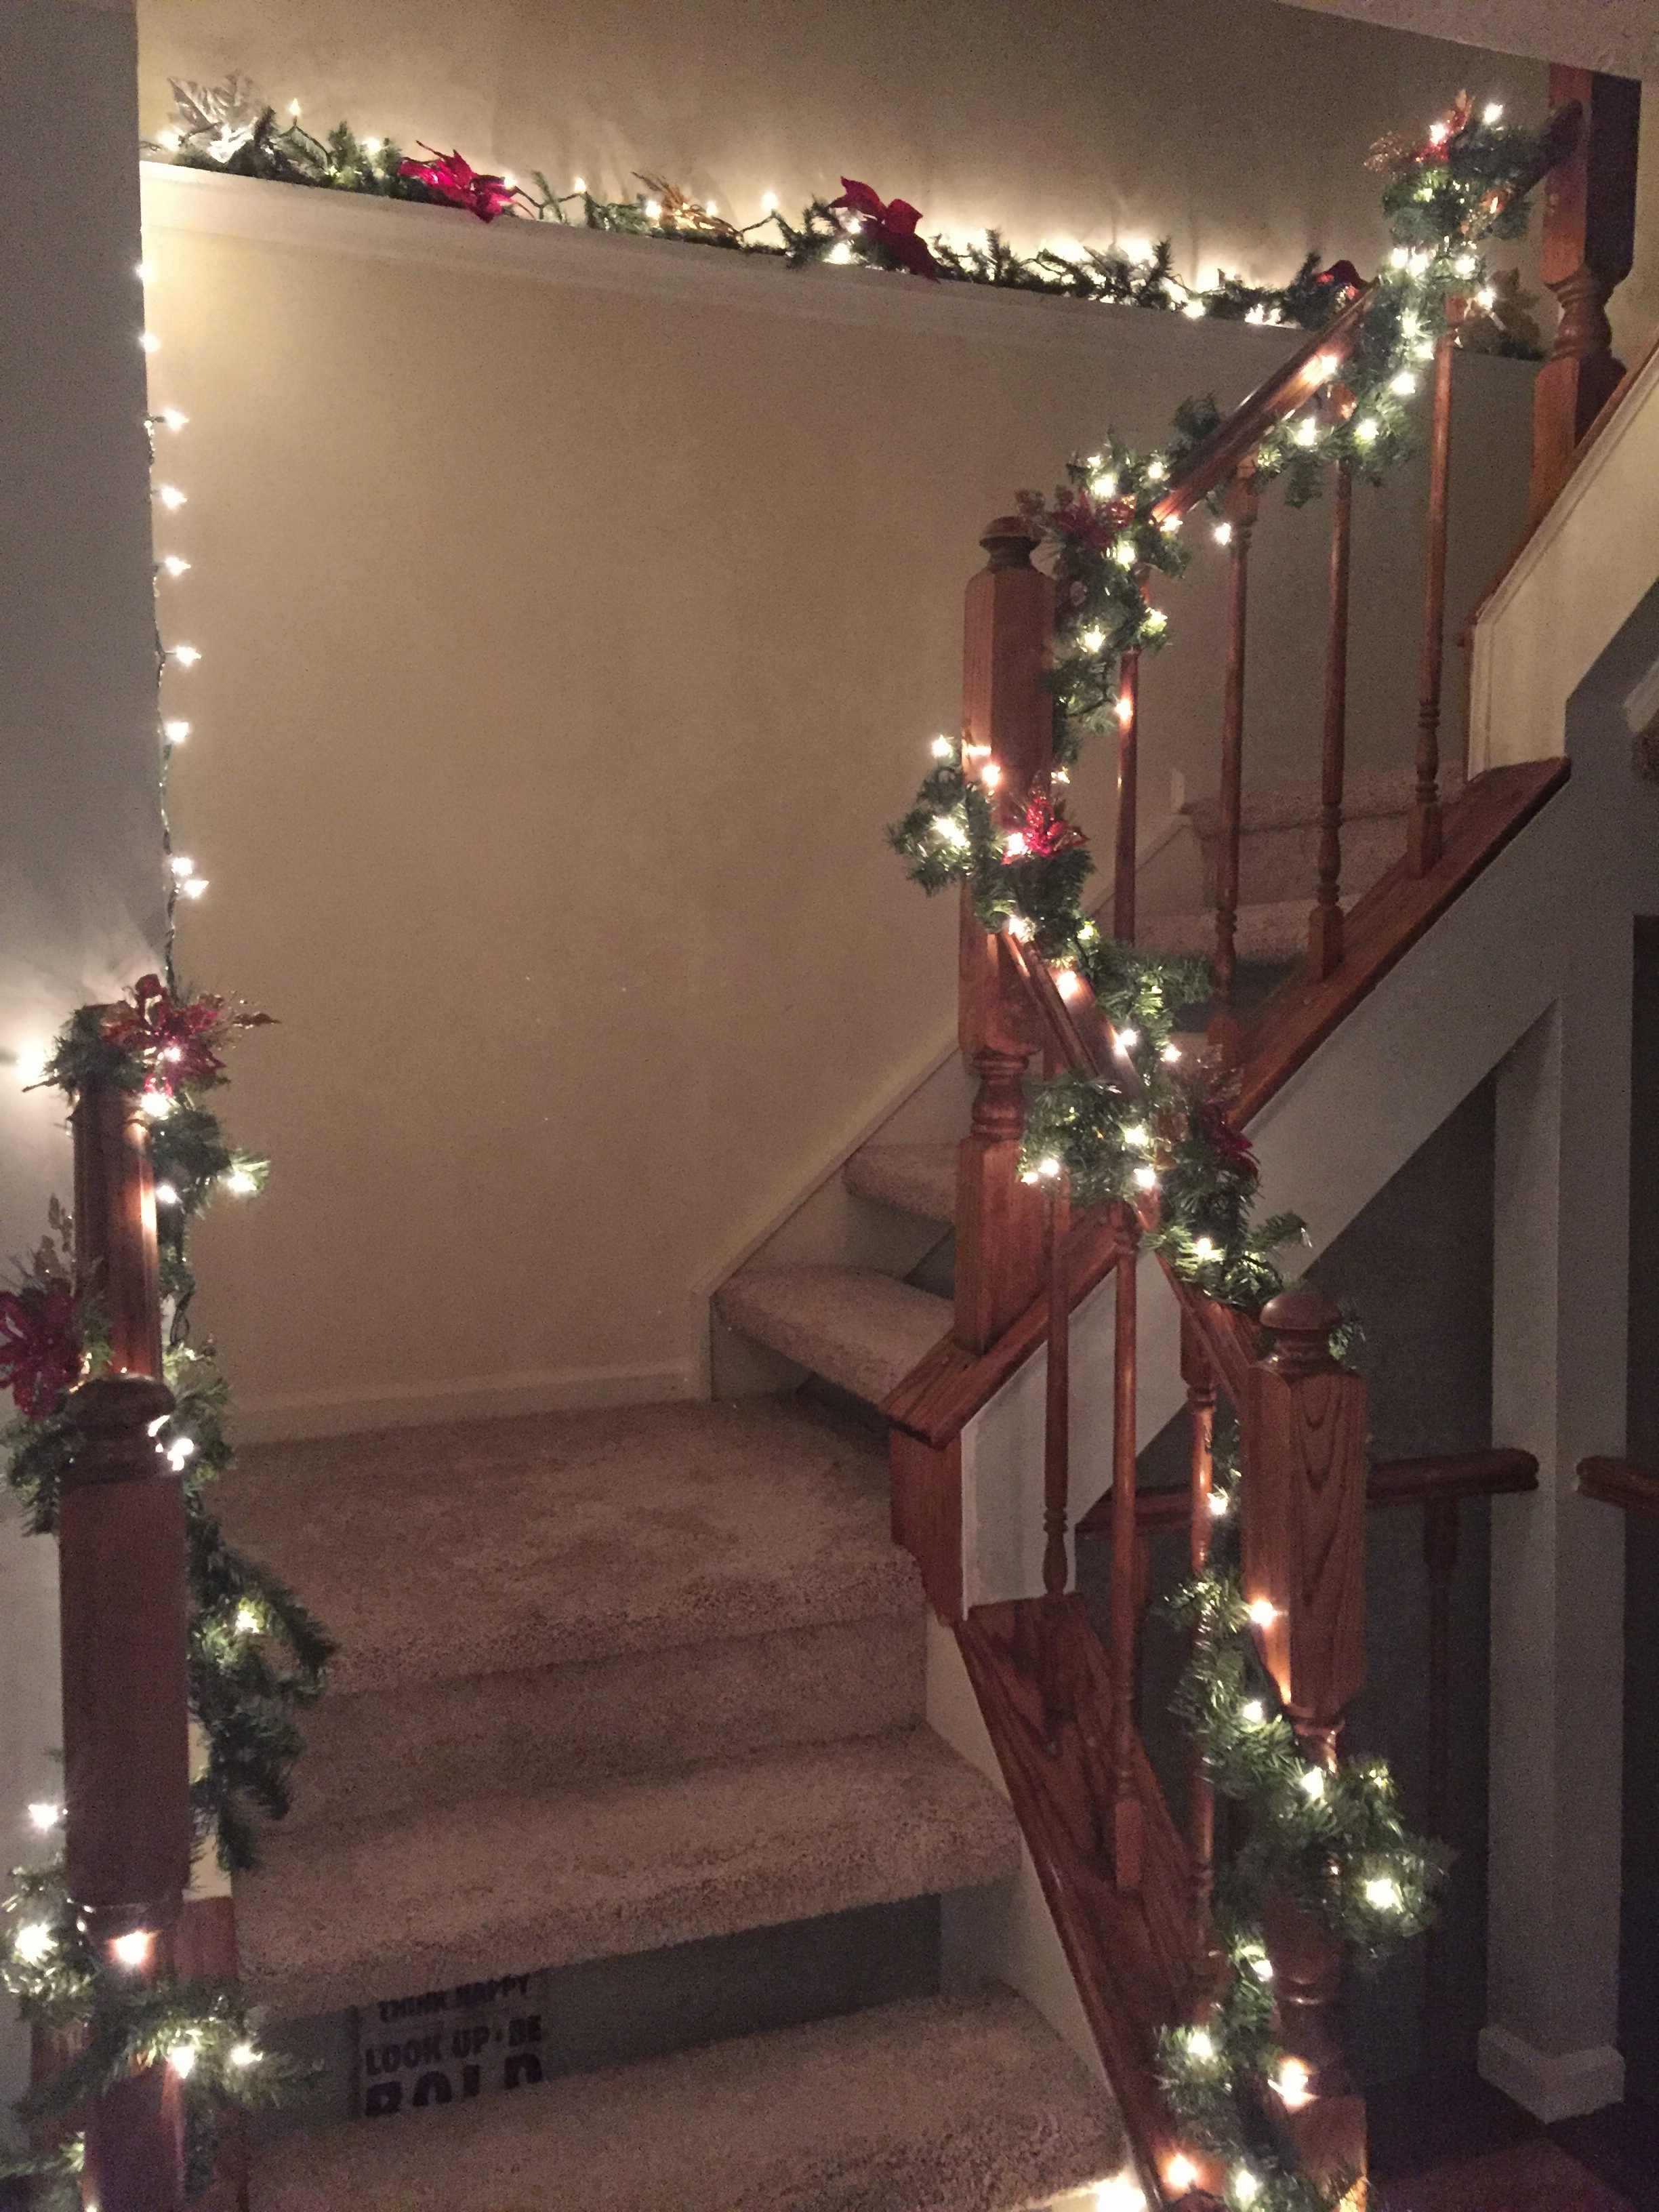 Christmas decorations are so much fun and festive! I wanted to share how I decorated my house for Christmas! My style is definitely traditional, classic Christmas. I'm really happy with how they turned out!